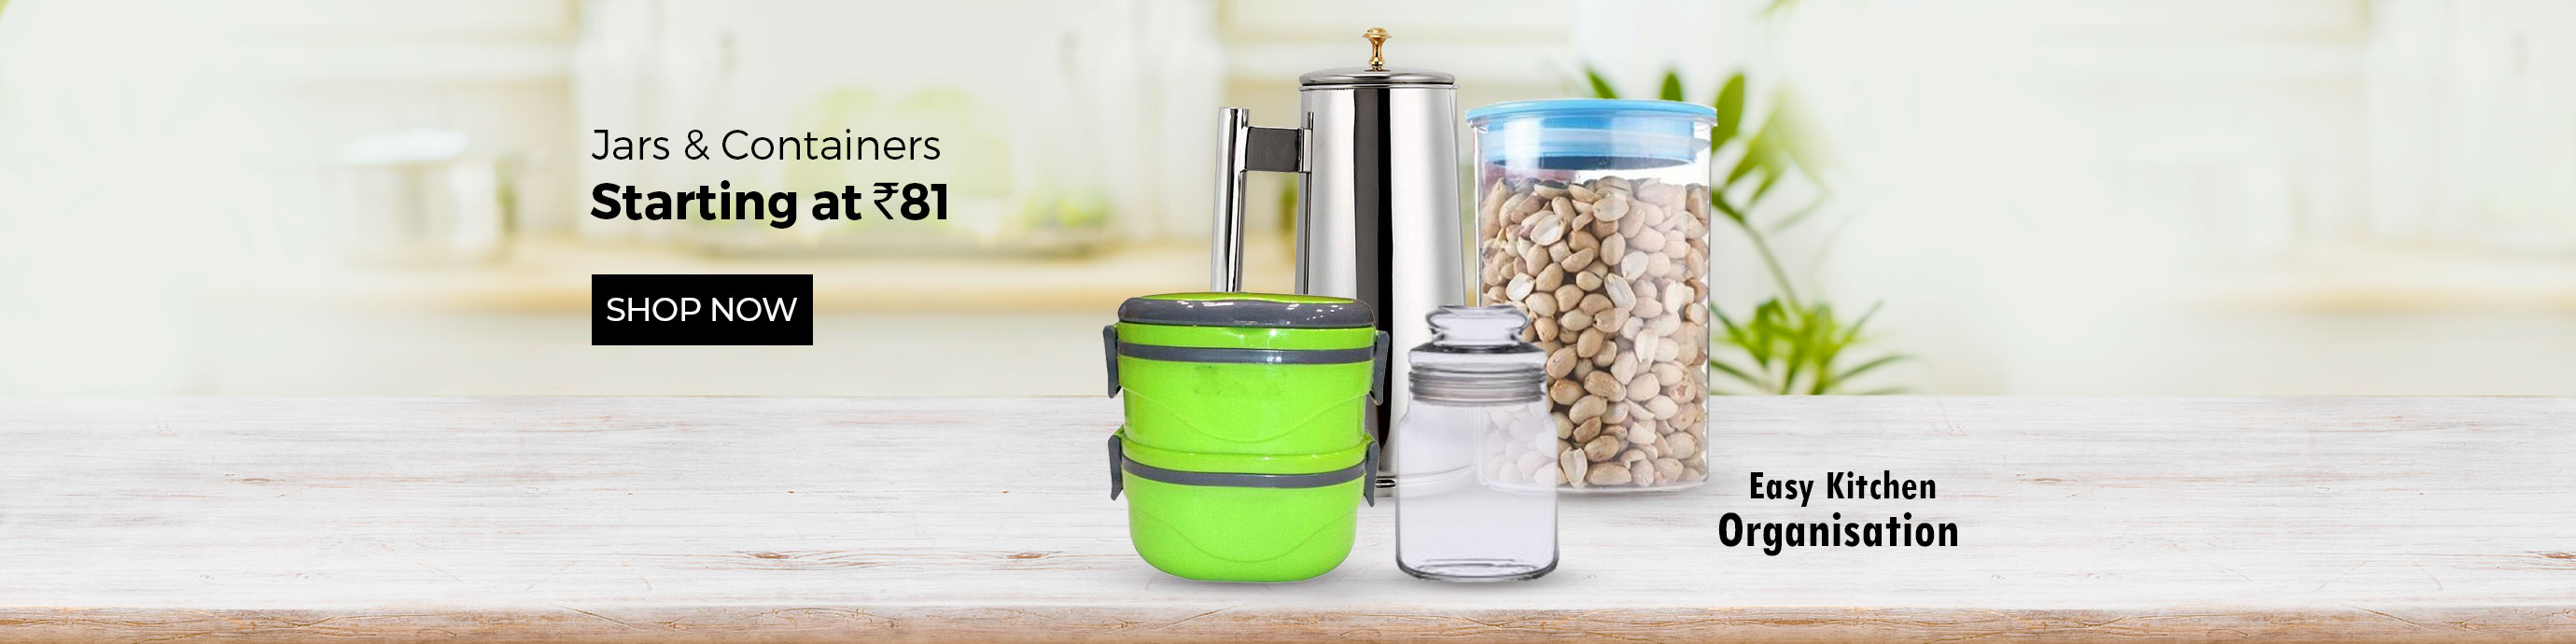 ShopClues.com - Jars and Containers starting at just ₹81